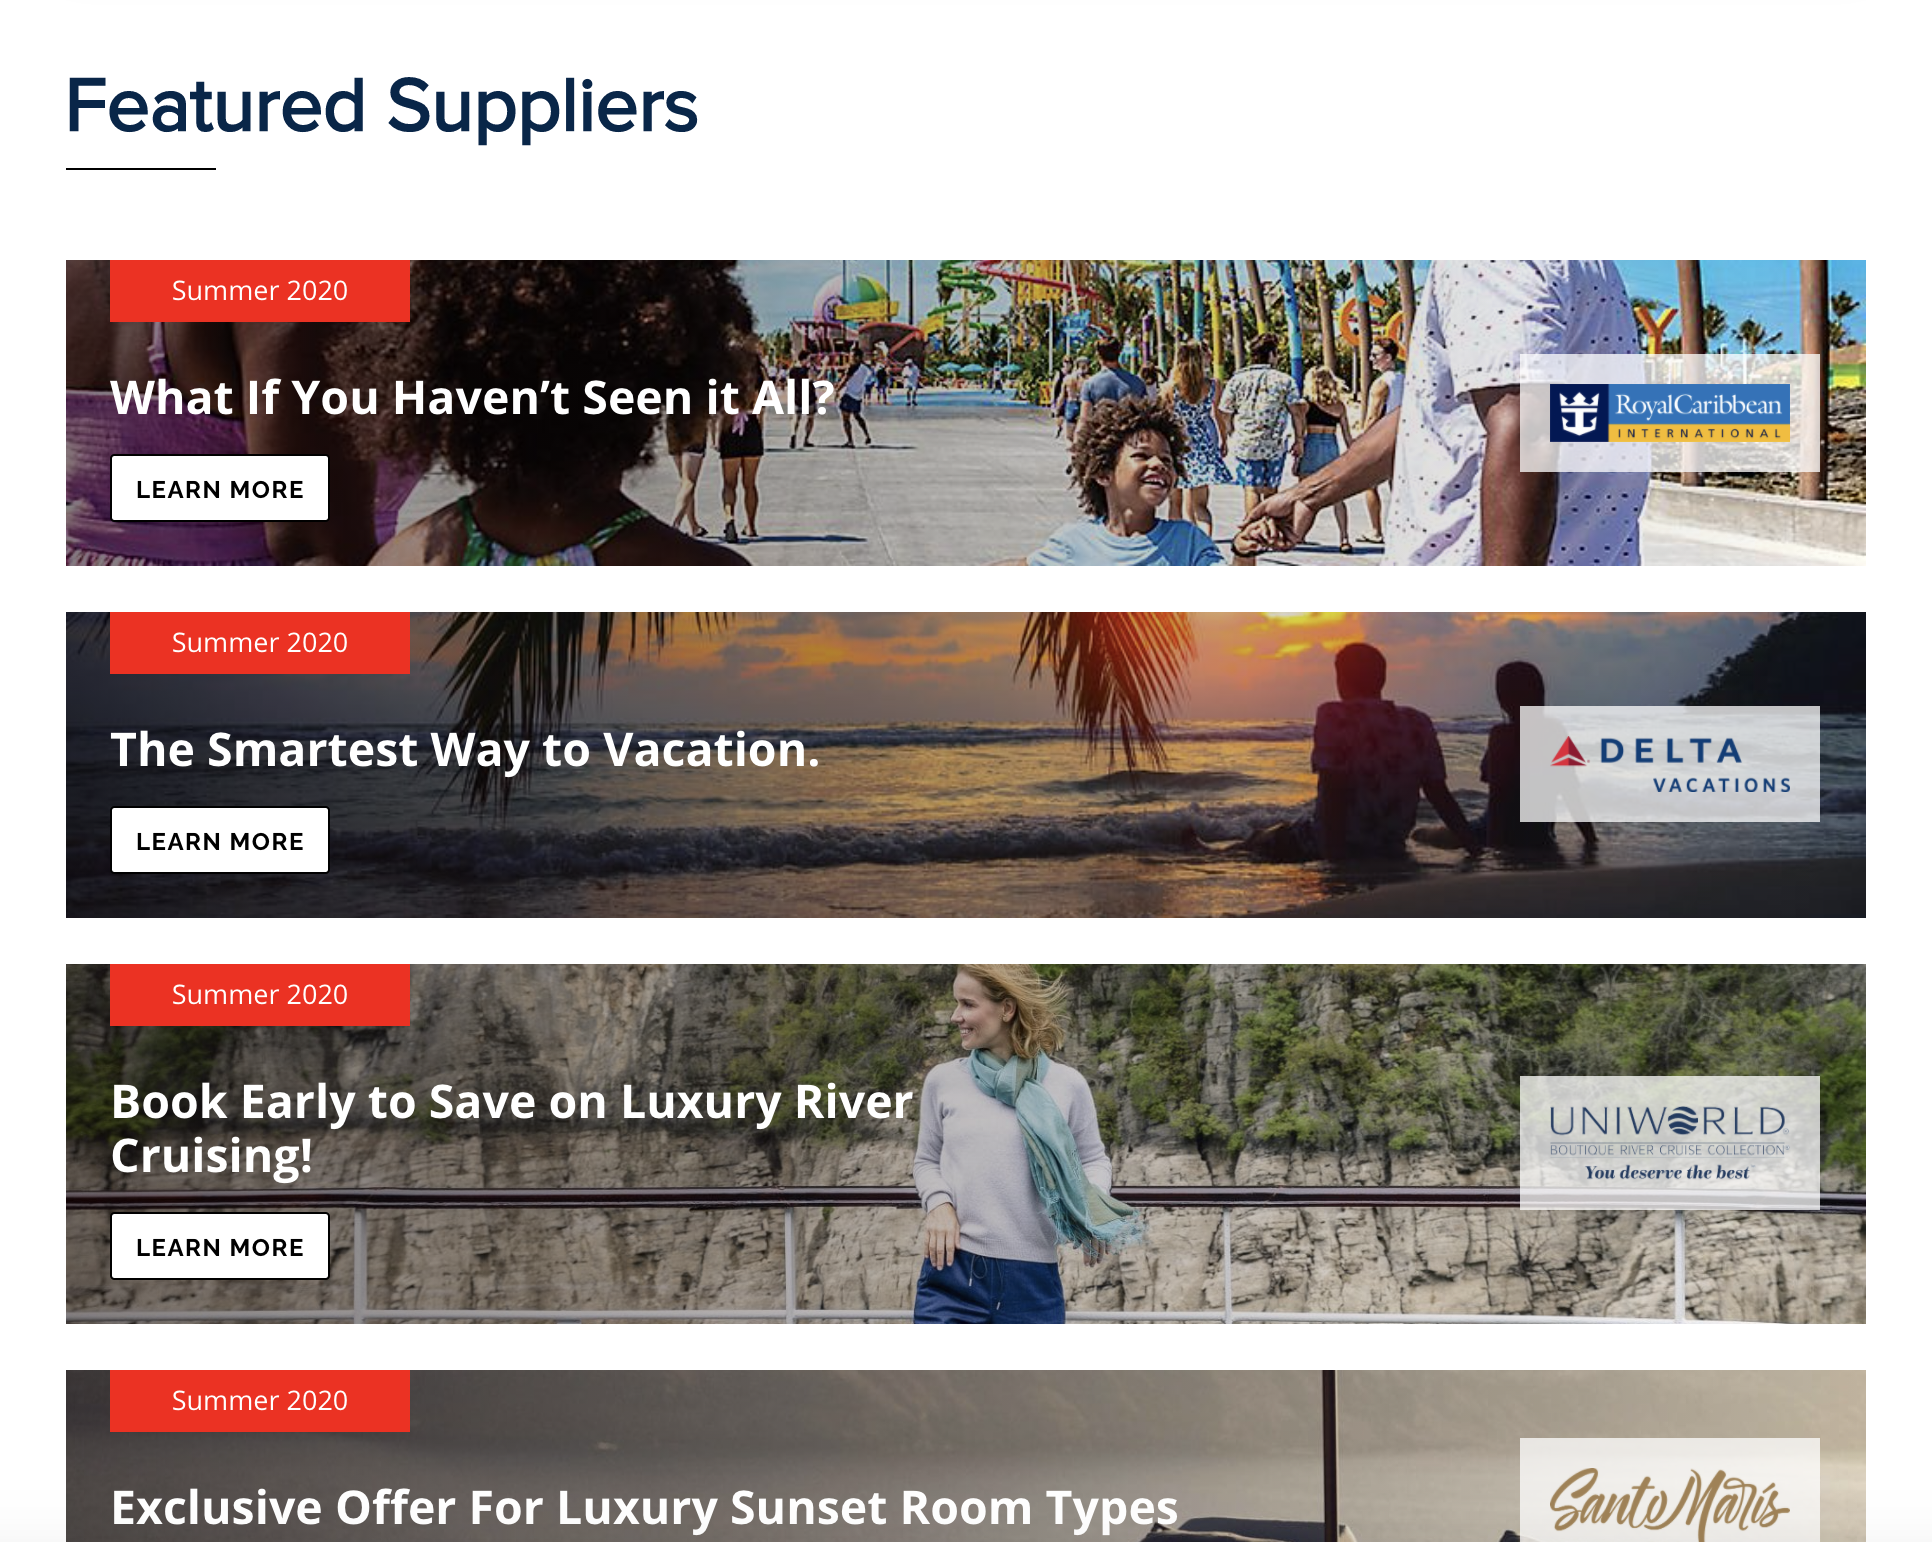 featured suppliers example